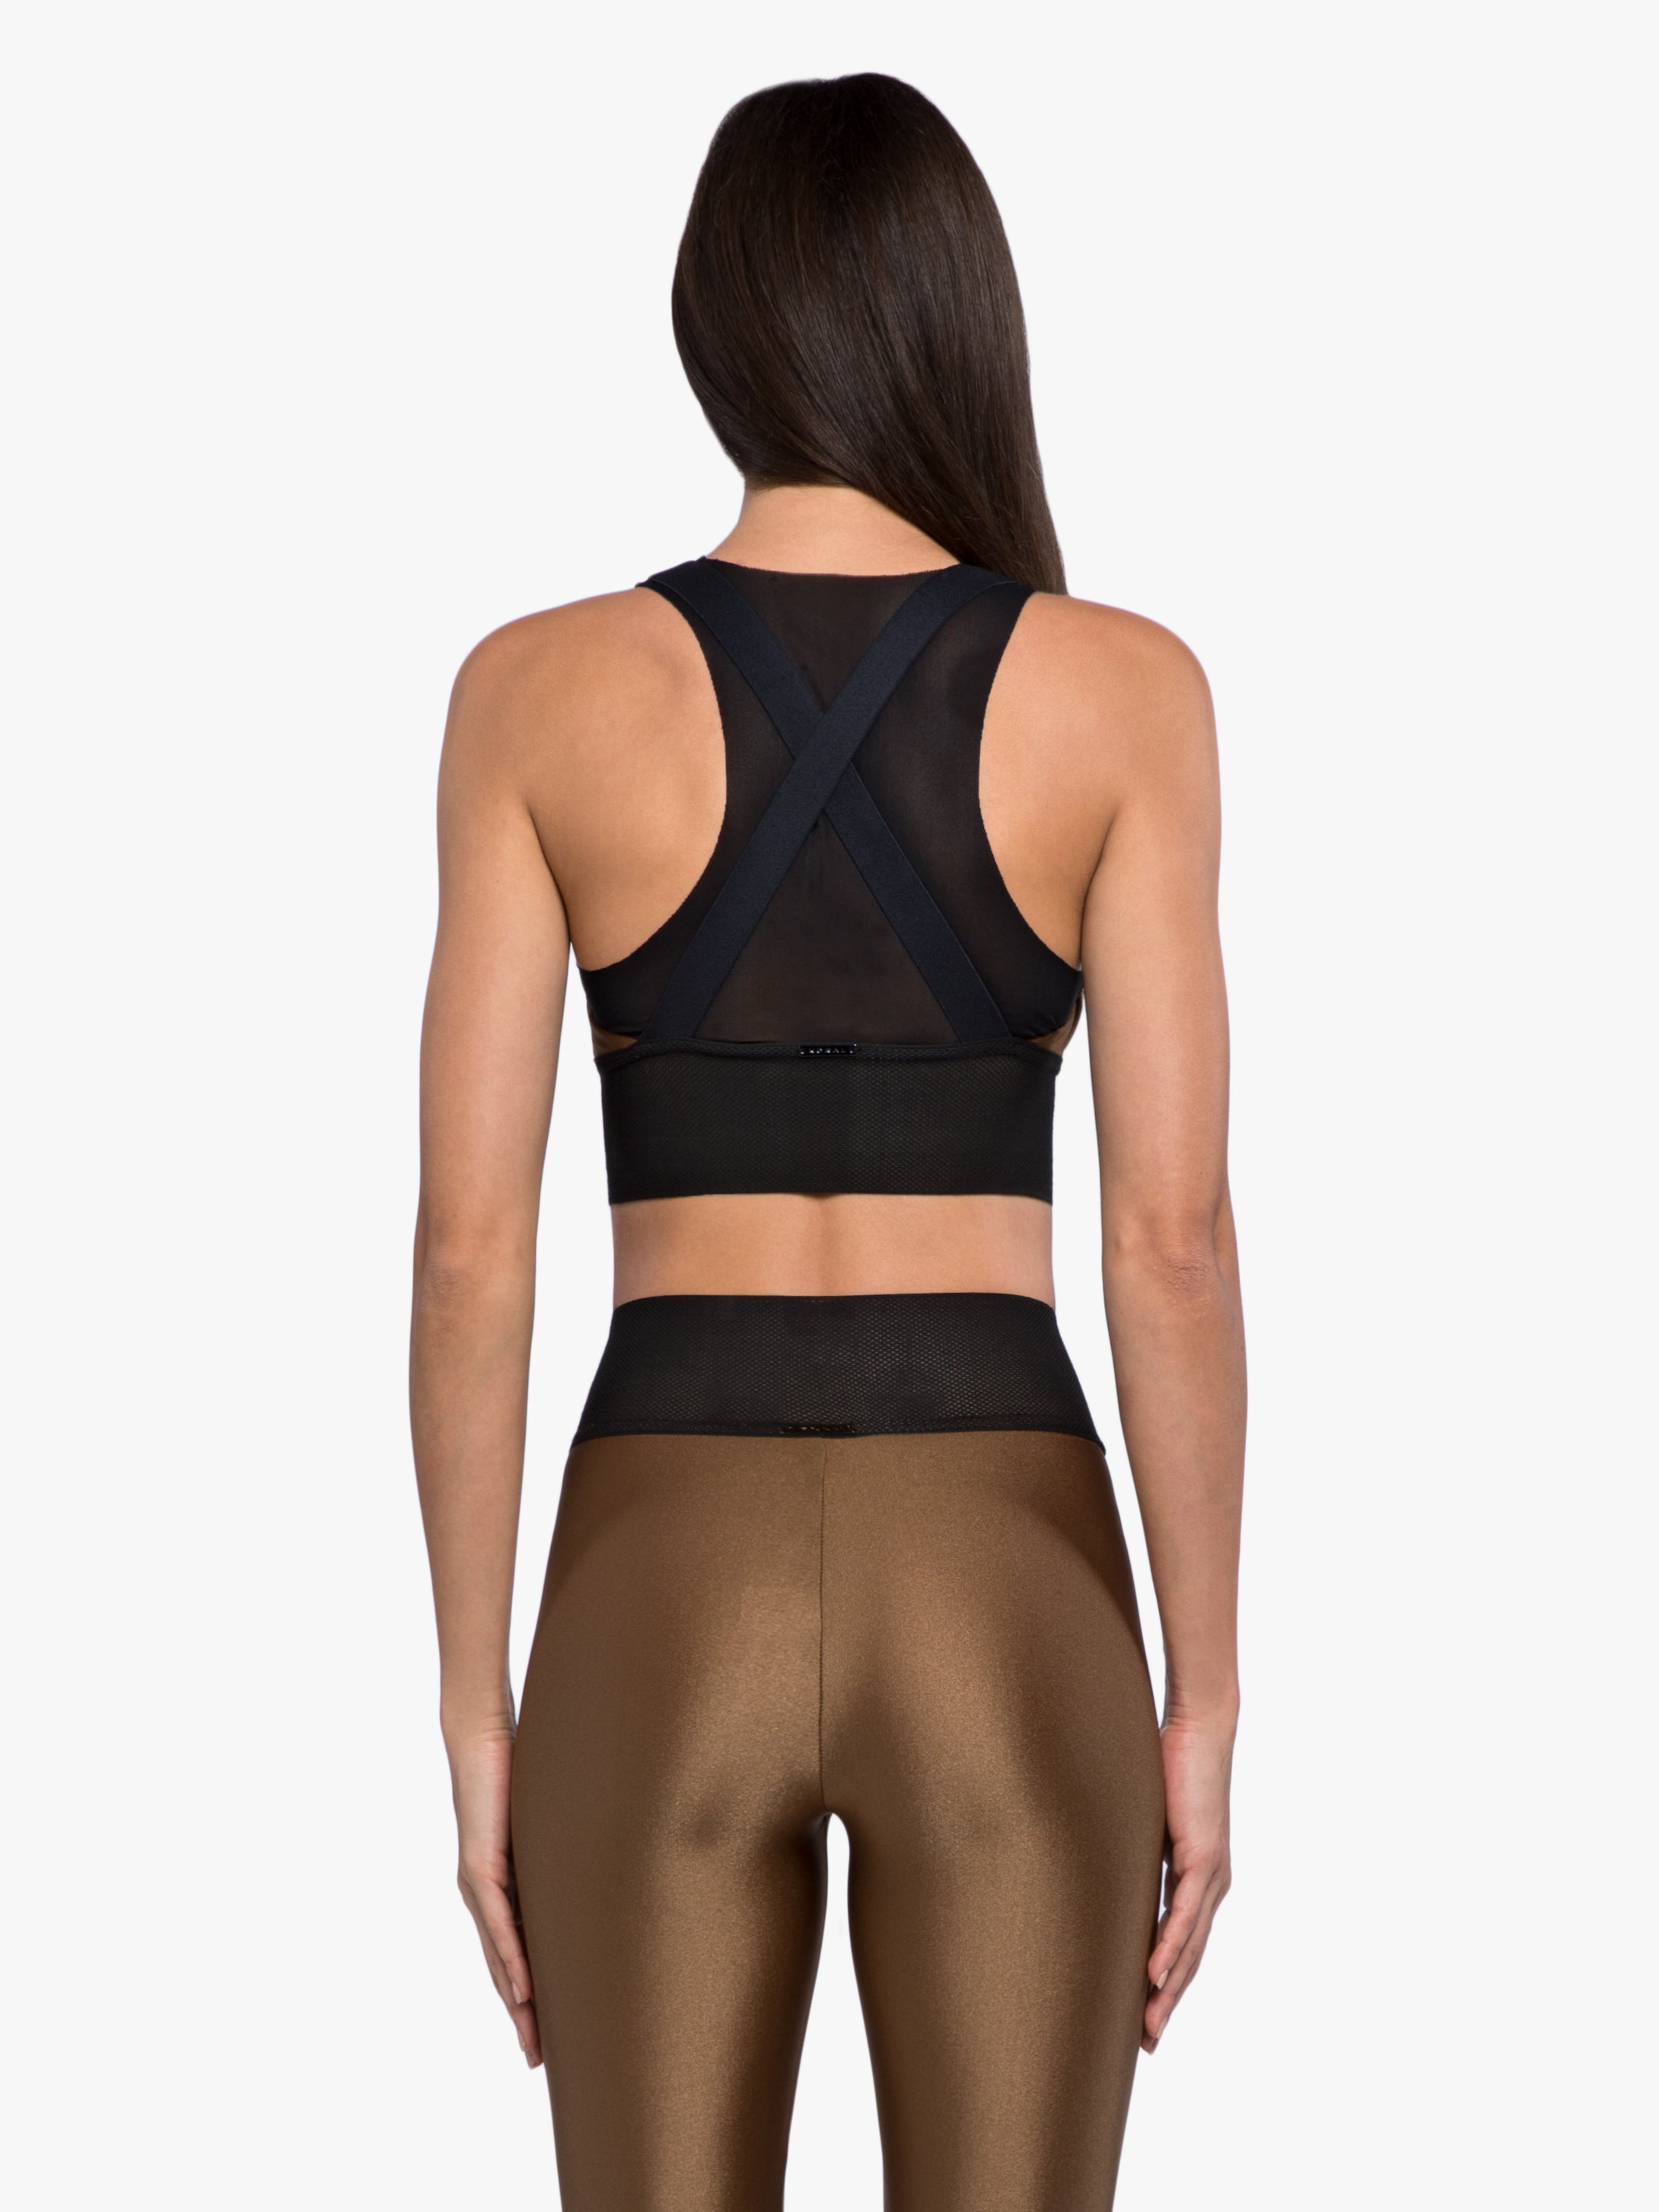 Utopia Sprint Sports Bra - Toffee/Black